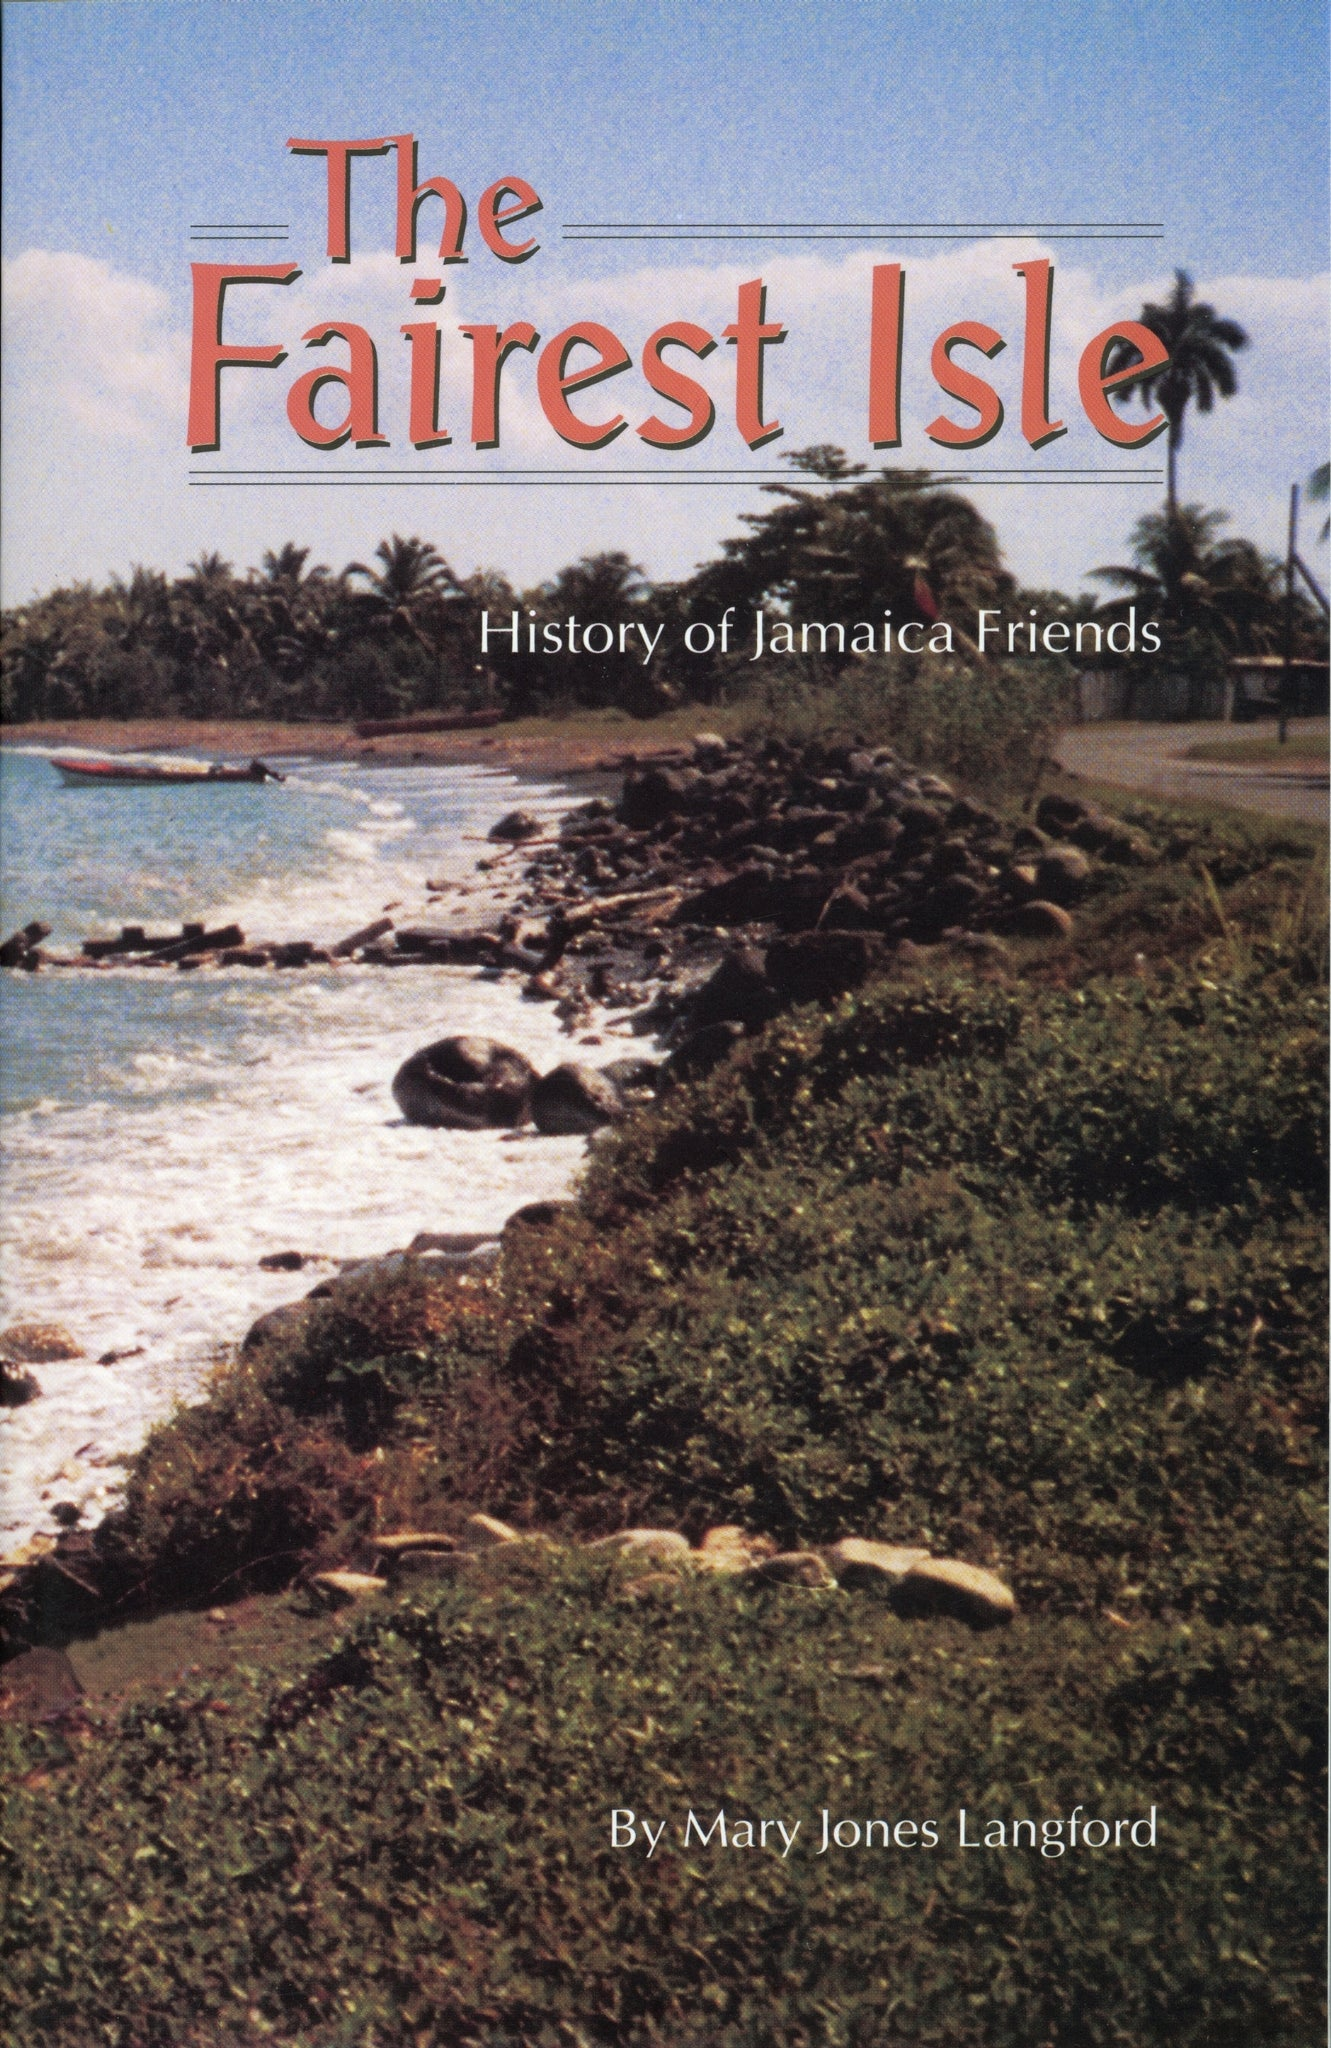 Fairest Isle: History of Jamaica Friends